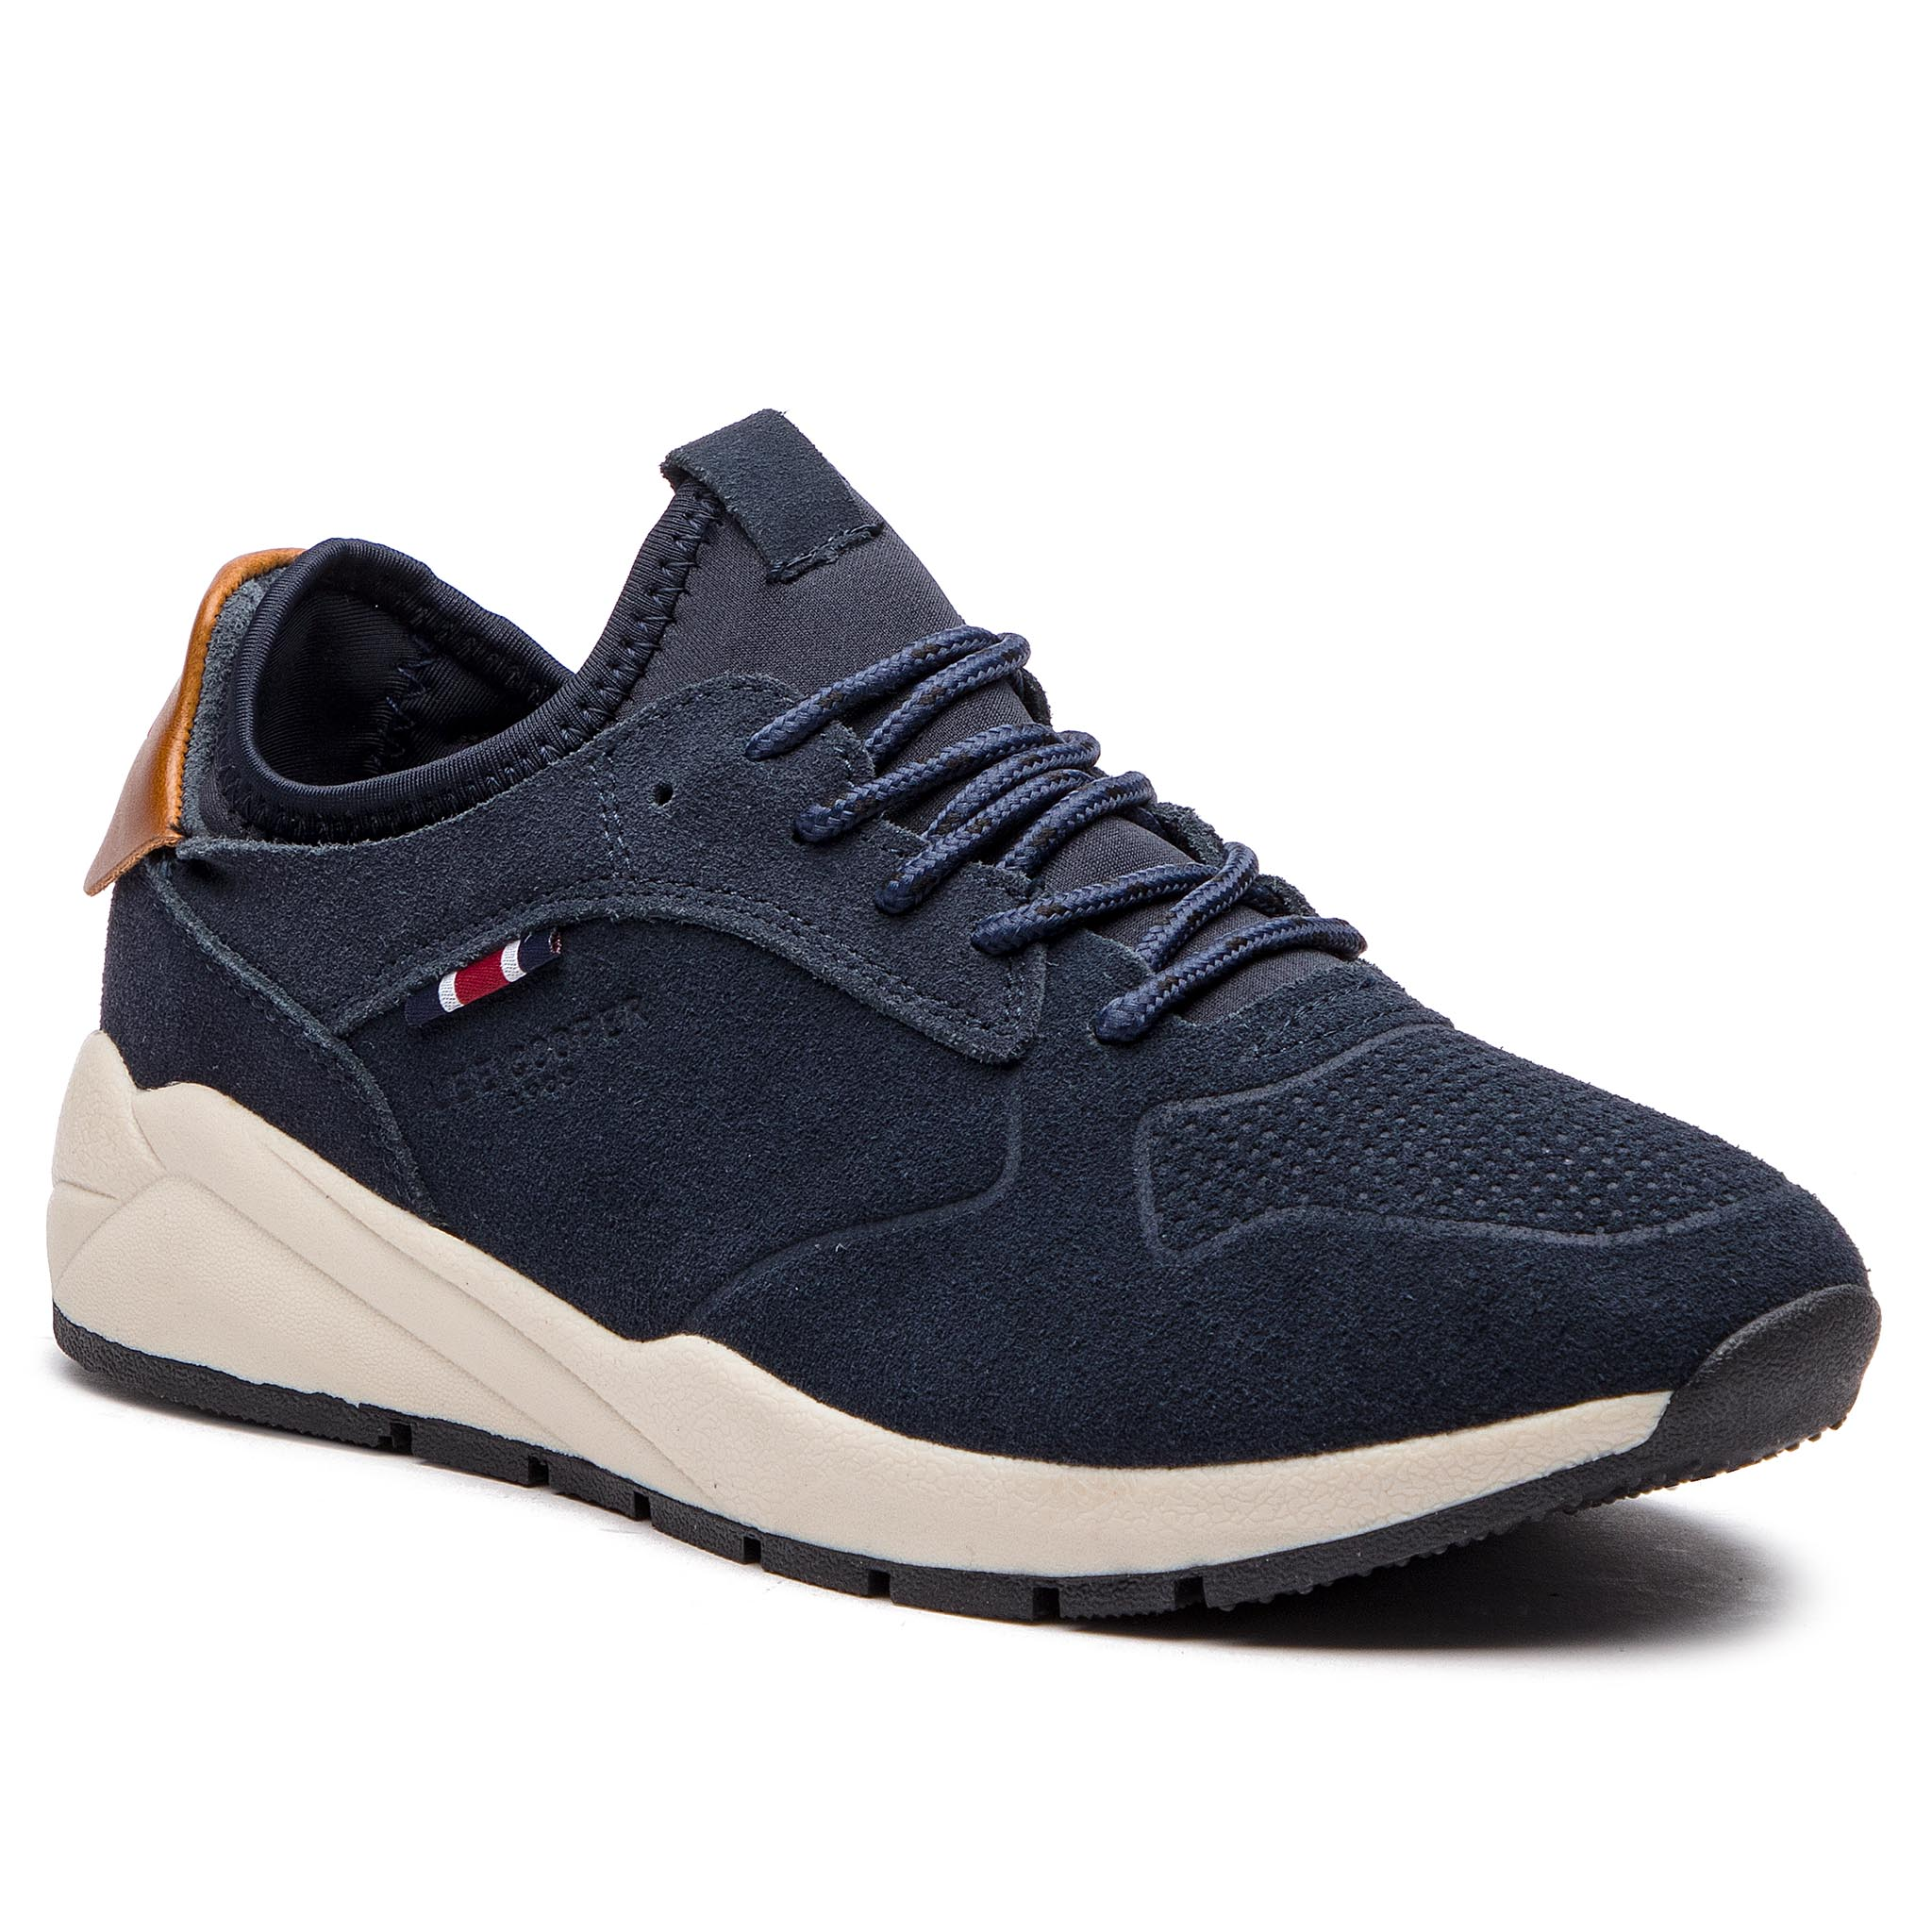 Sneakers LEE COOPER - Dundee PDND0001L Navy 0040